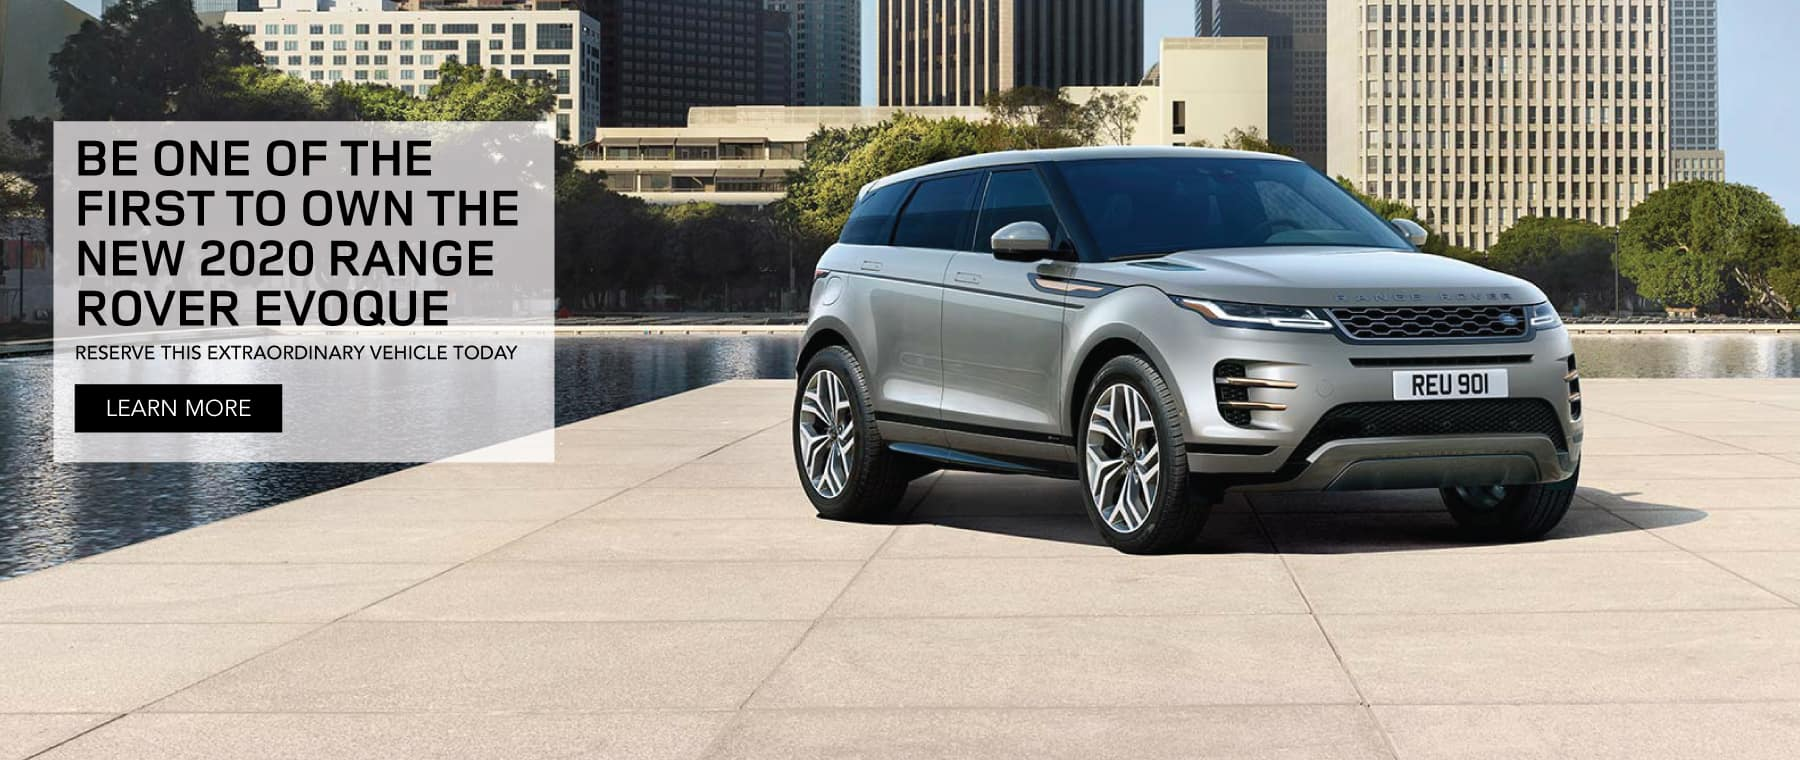 land rover mission viejo   new & used cars mission viejo, ca